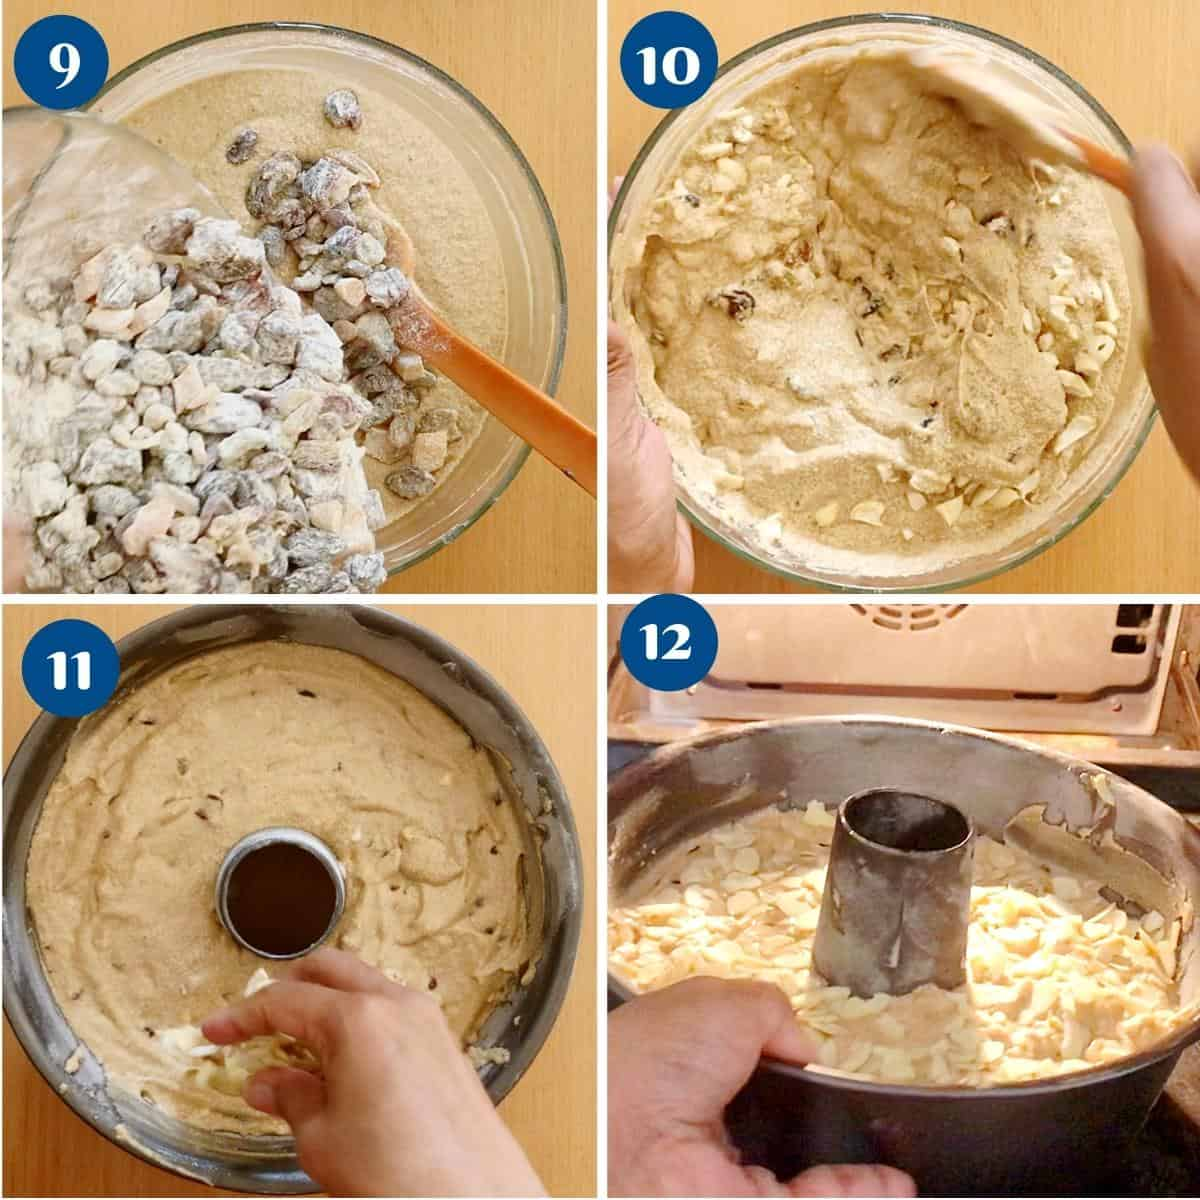 Step by step pictures baking the fruit cake in a tube pan.